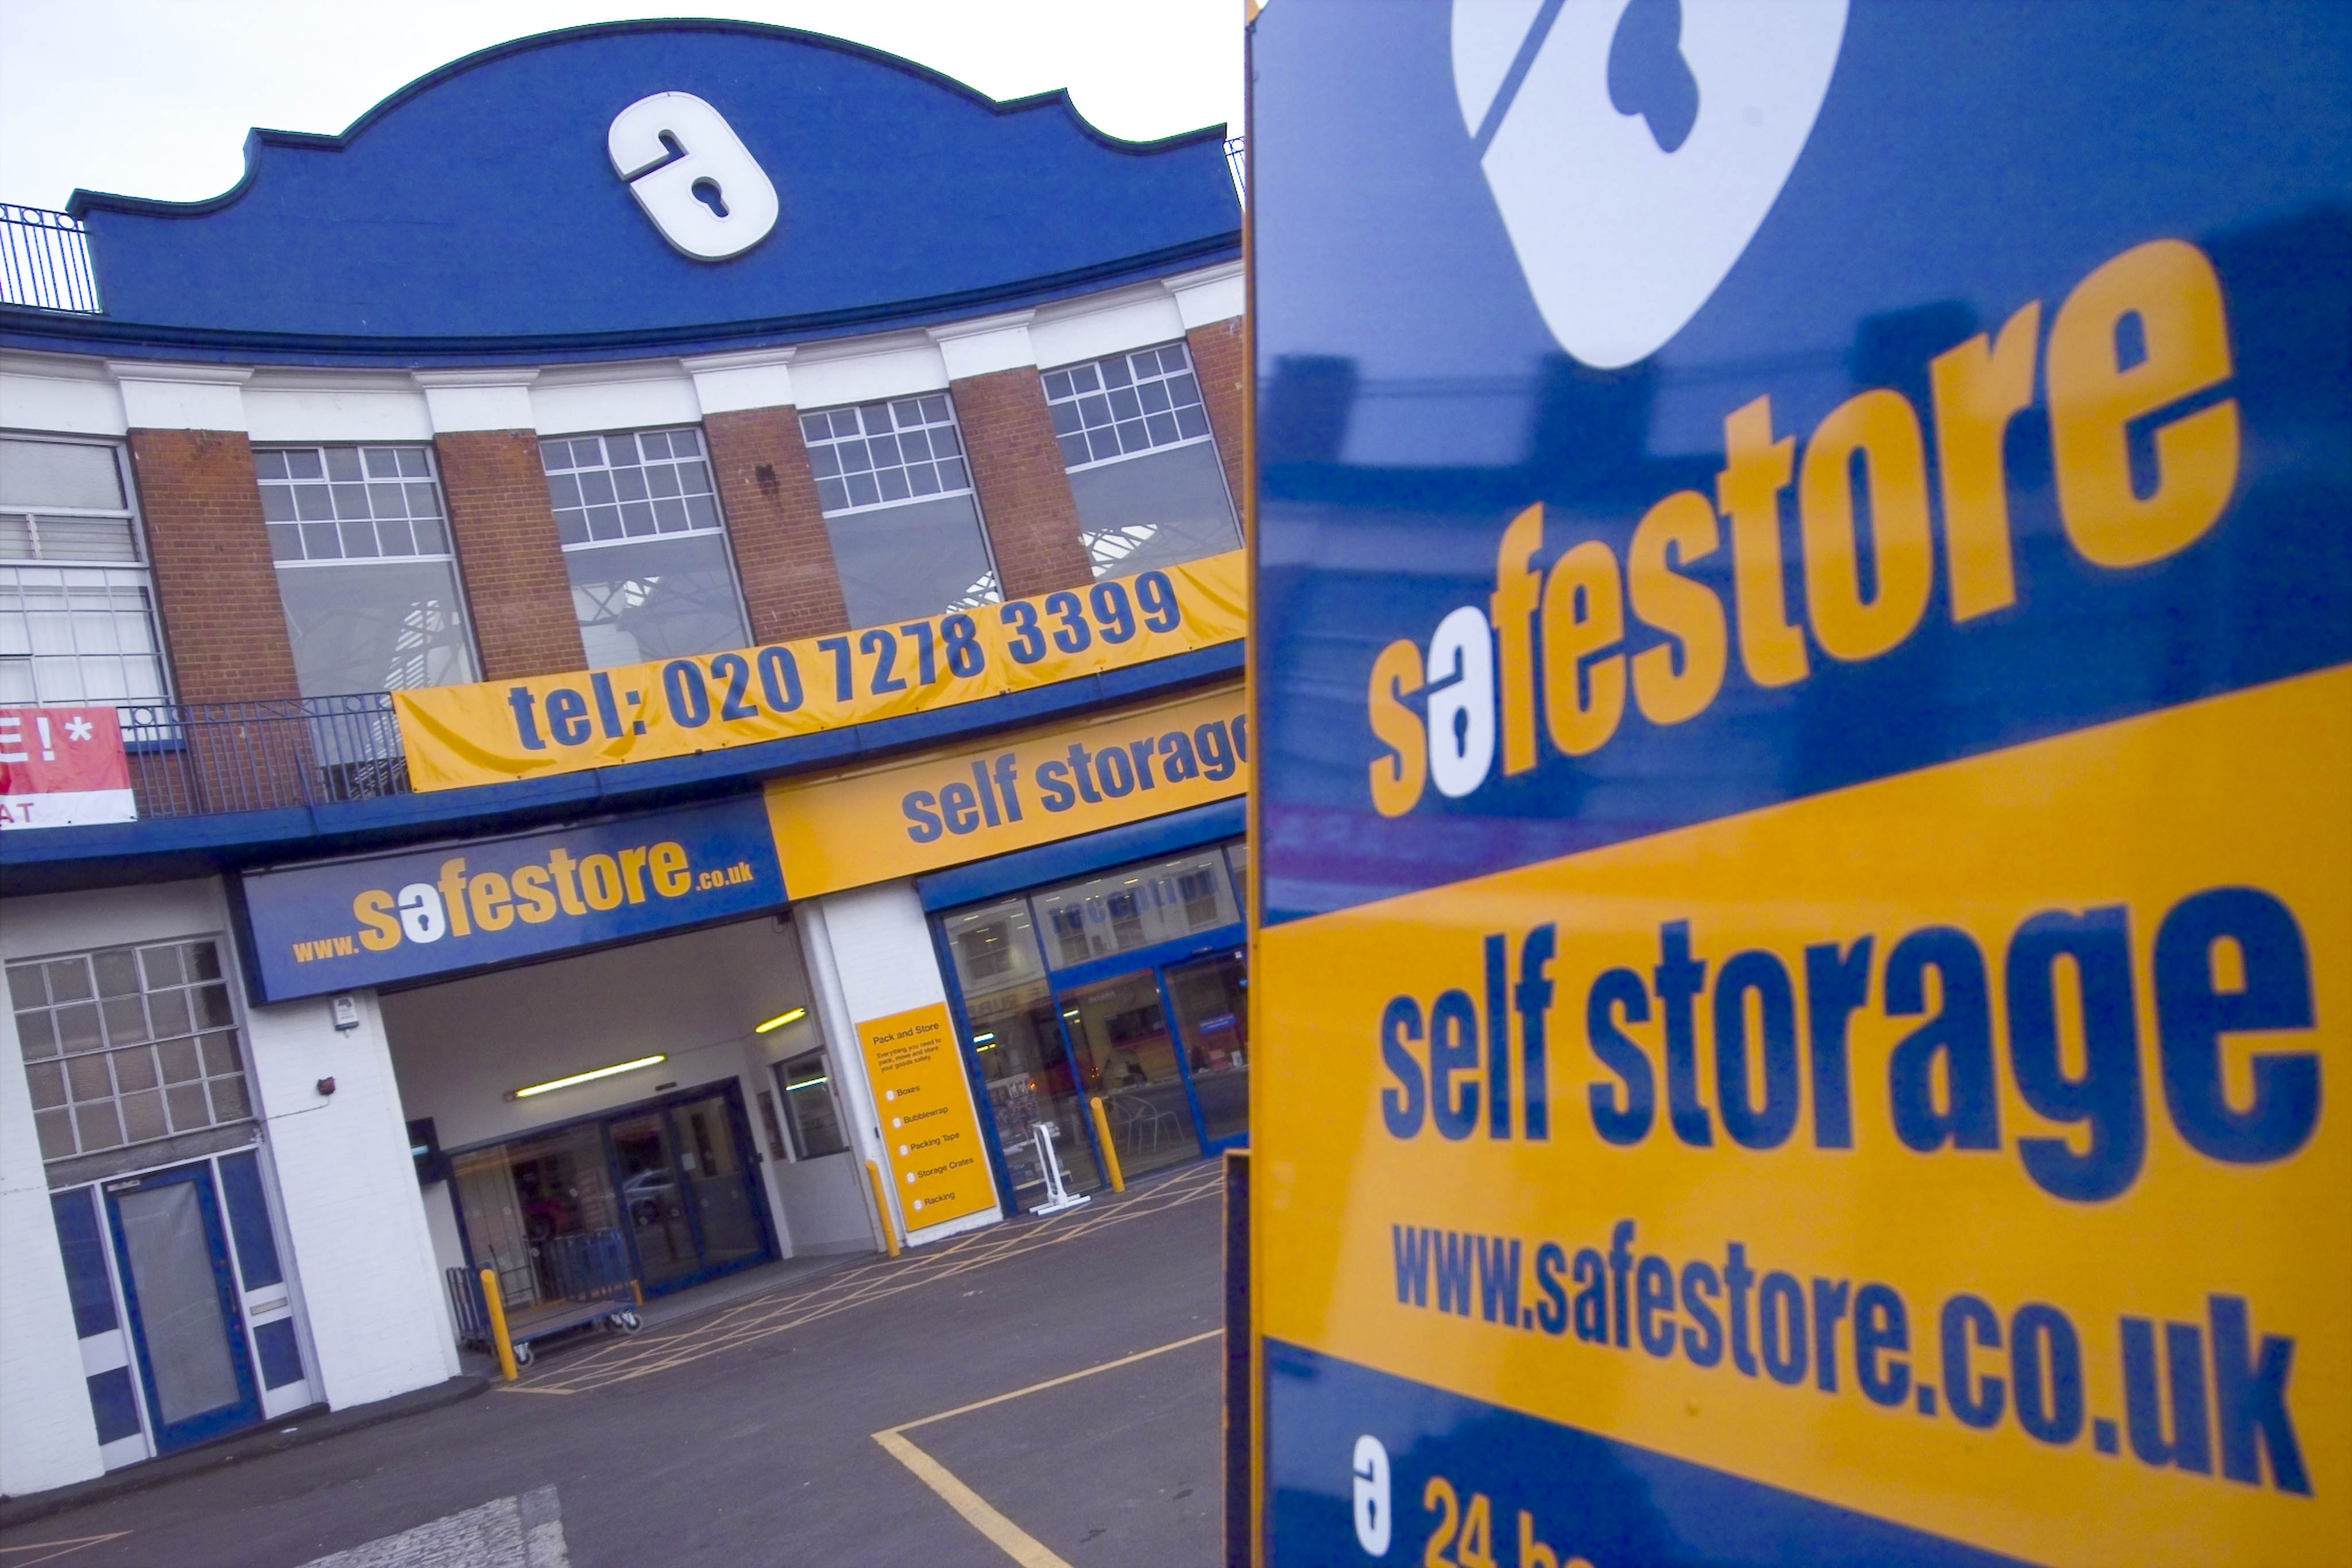 Planet Self Storage The Self Storage Business Is Booming Here S Why Bloomberg